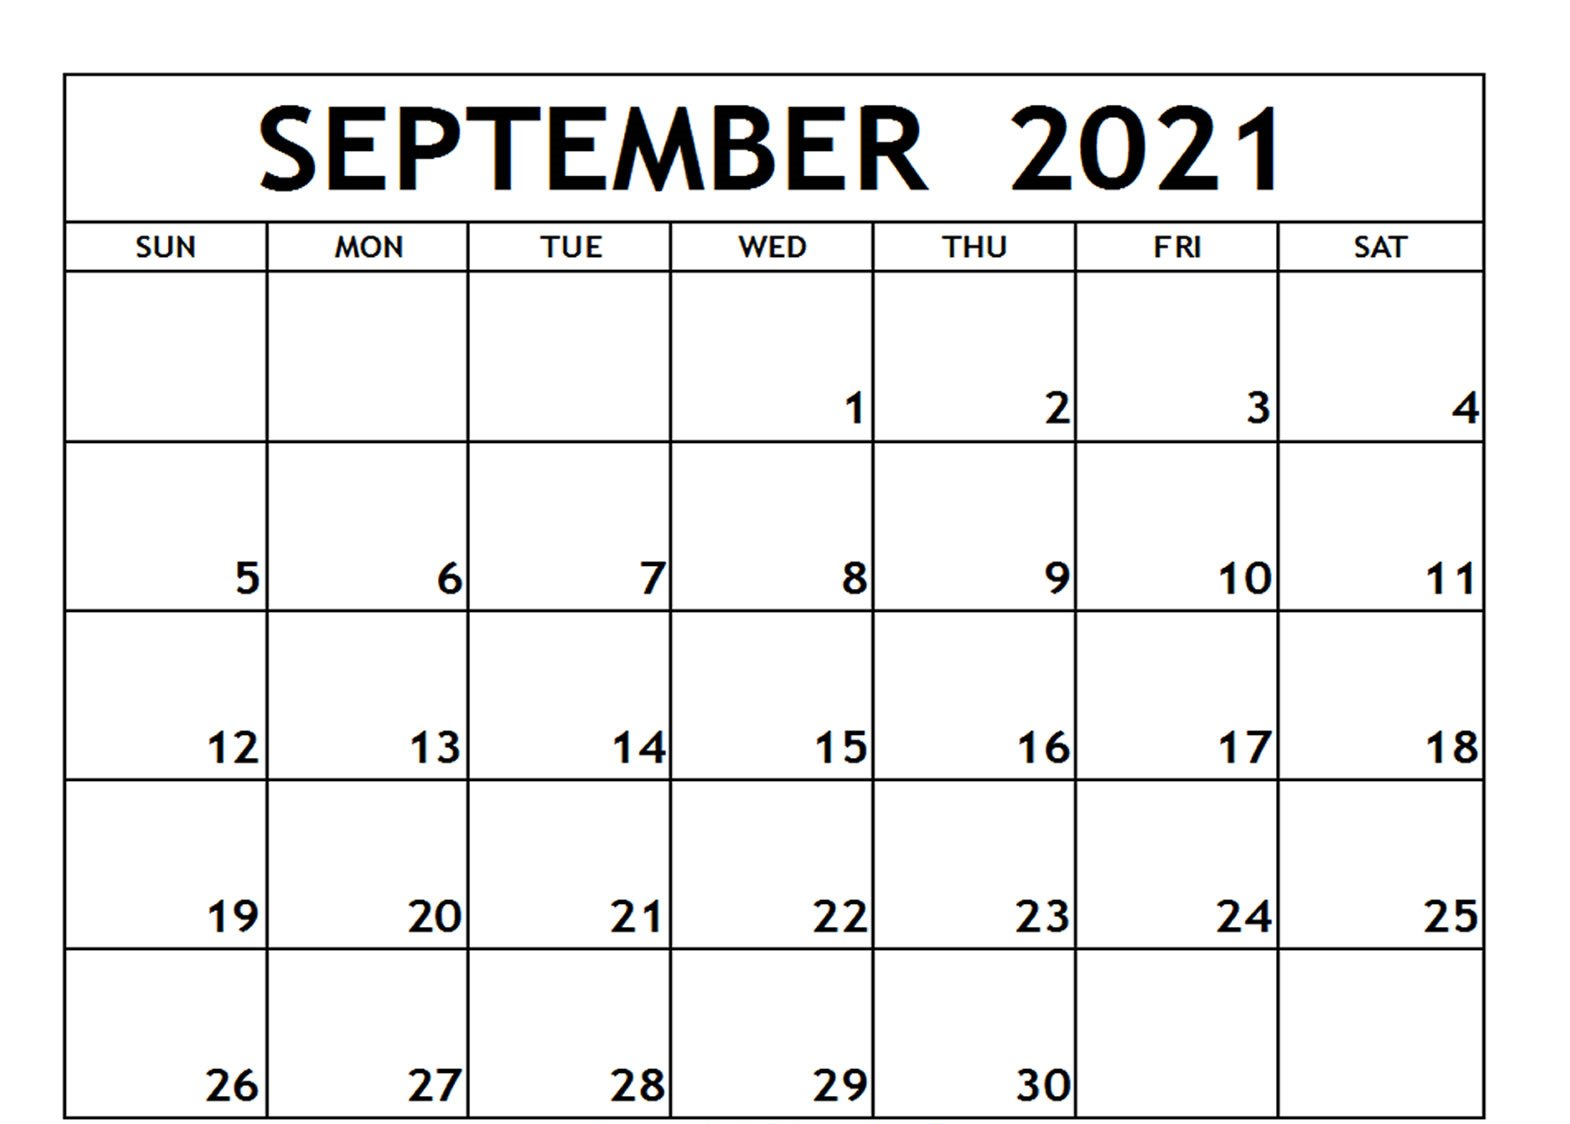 Fillable Calendar for September 2021 Printable Blank Template with Notes